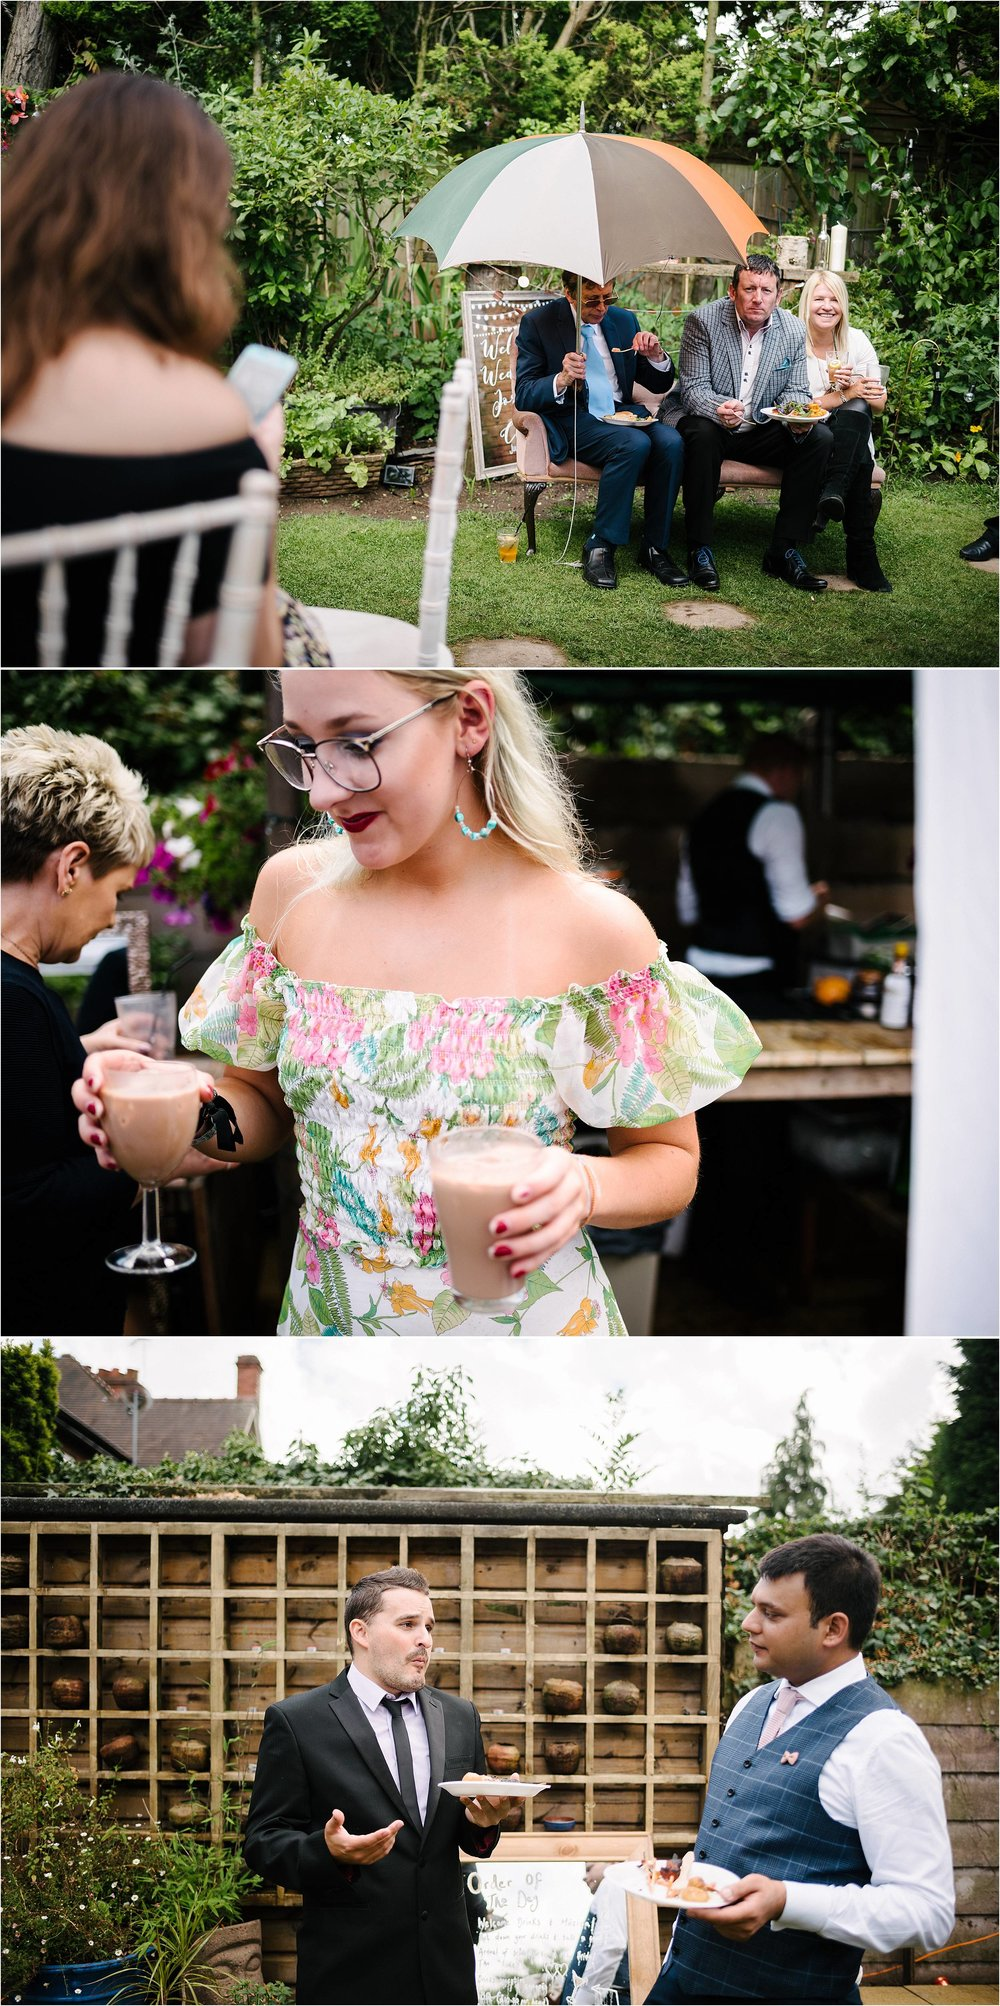 At home back garden wedding photographer_0070.jpg